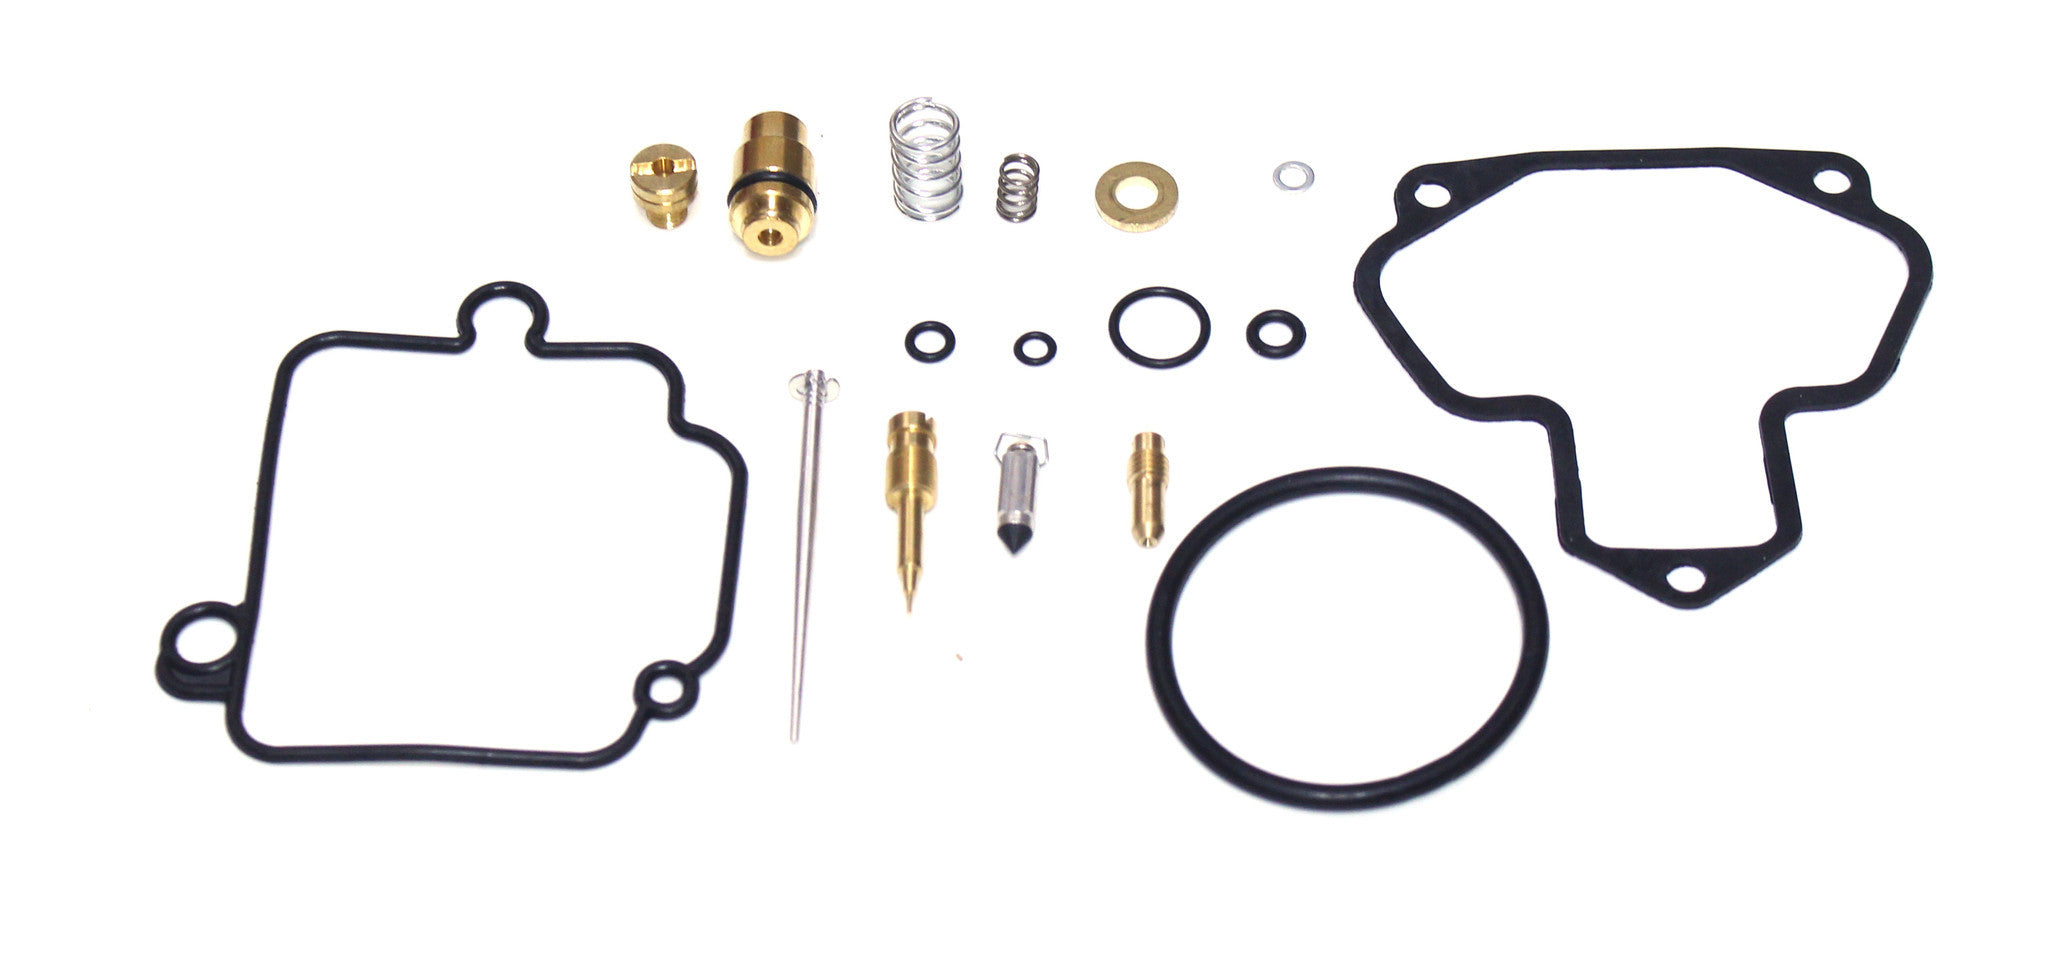 Yamaha carb carburetor rebuild kit warrior 350 350X